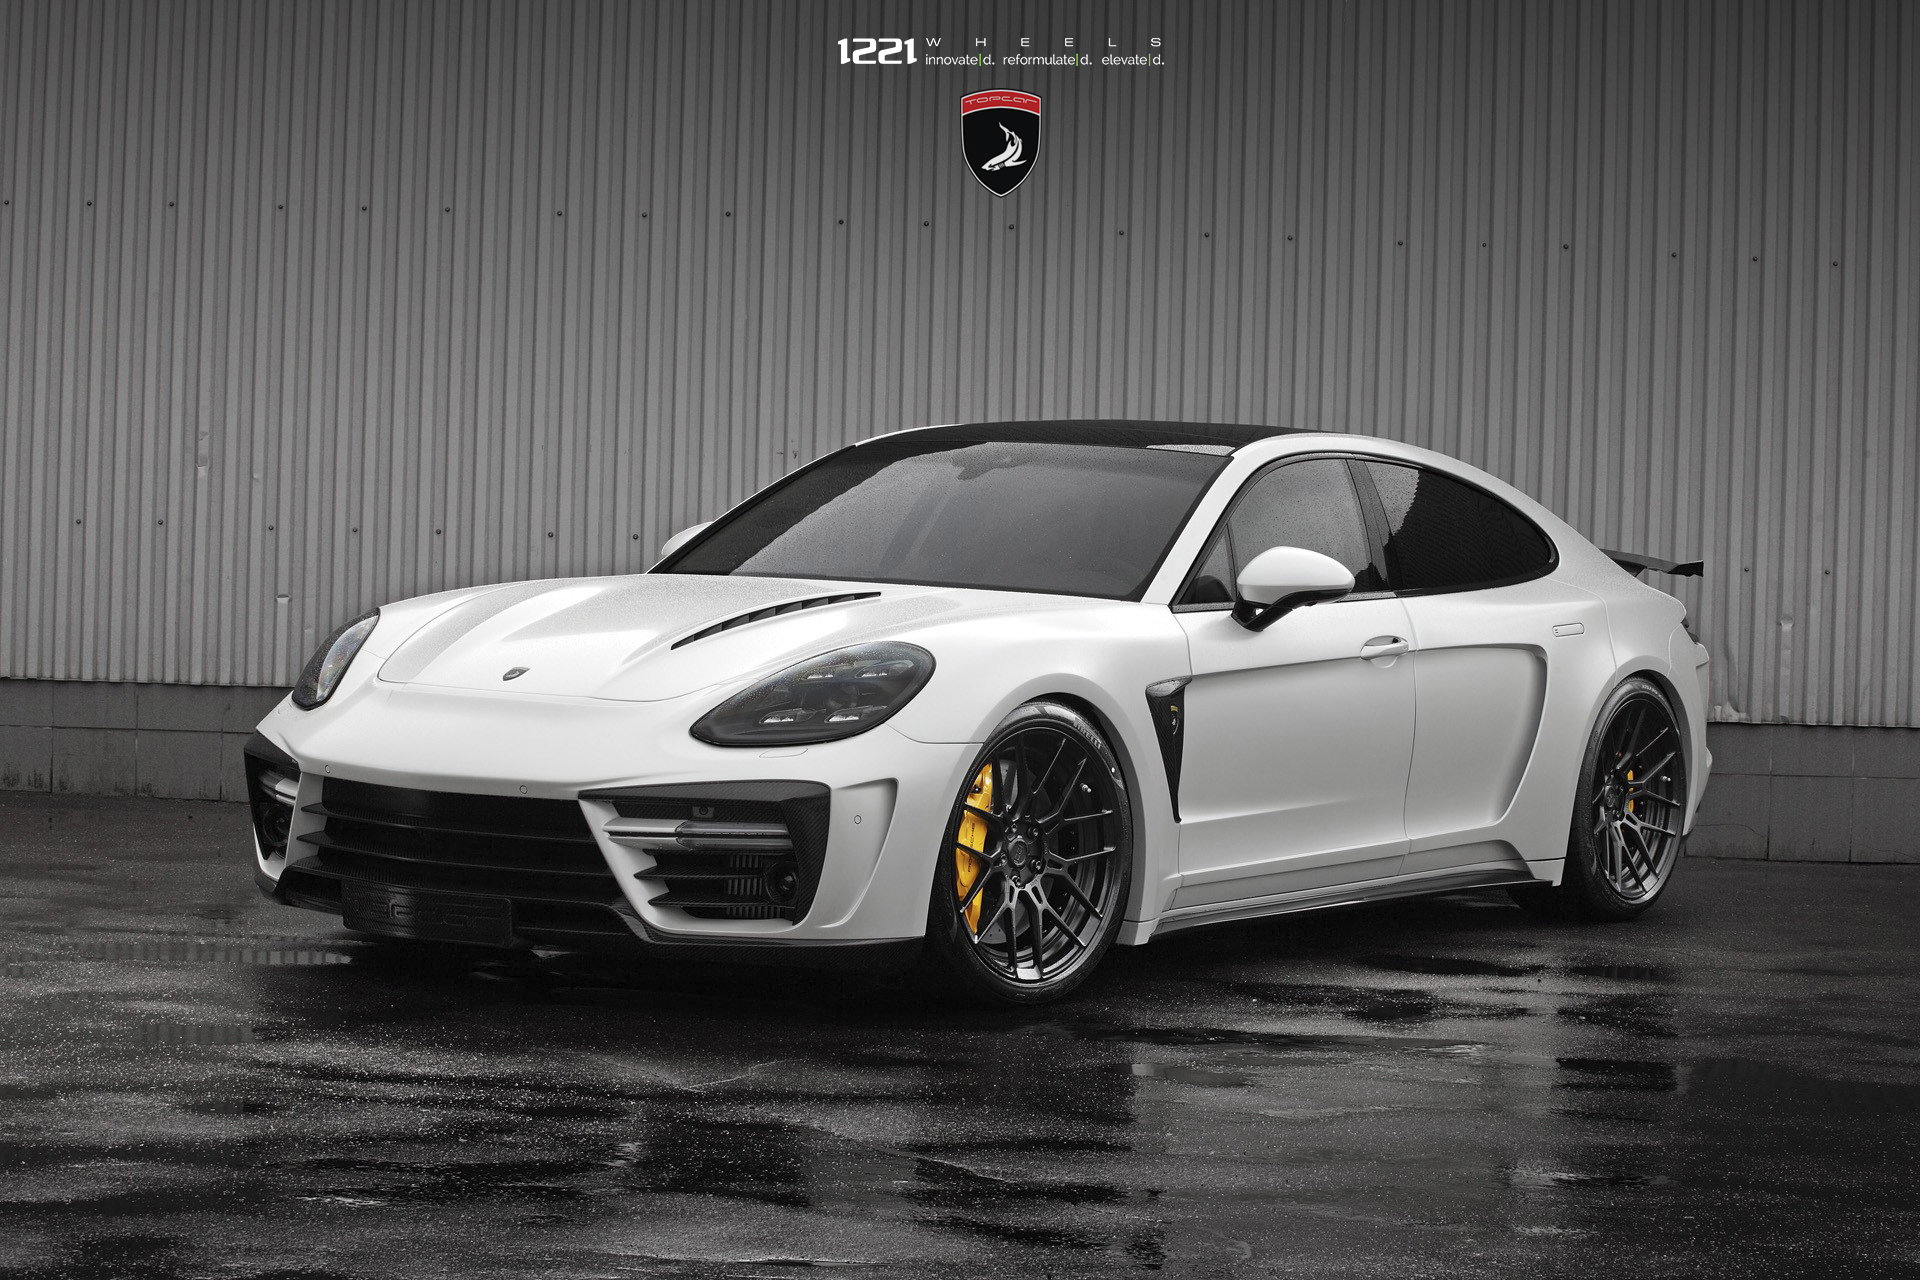 1221 Wheels Porsche Panamera Turbo Rsqi Ap2 Apex